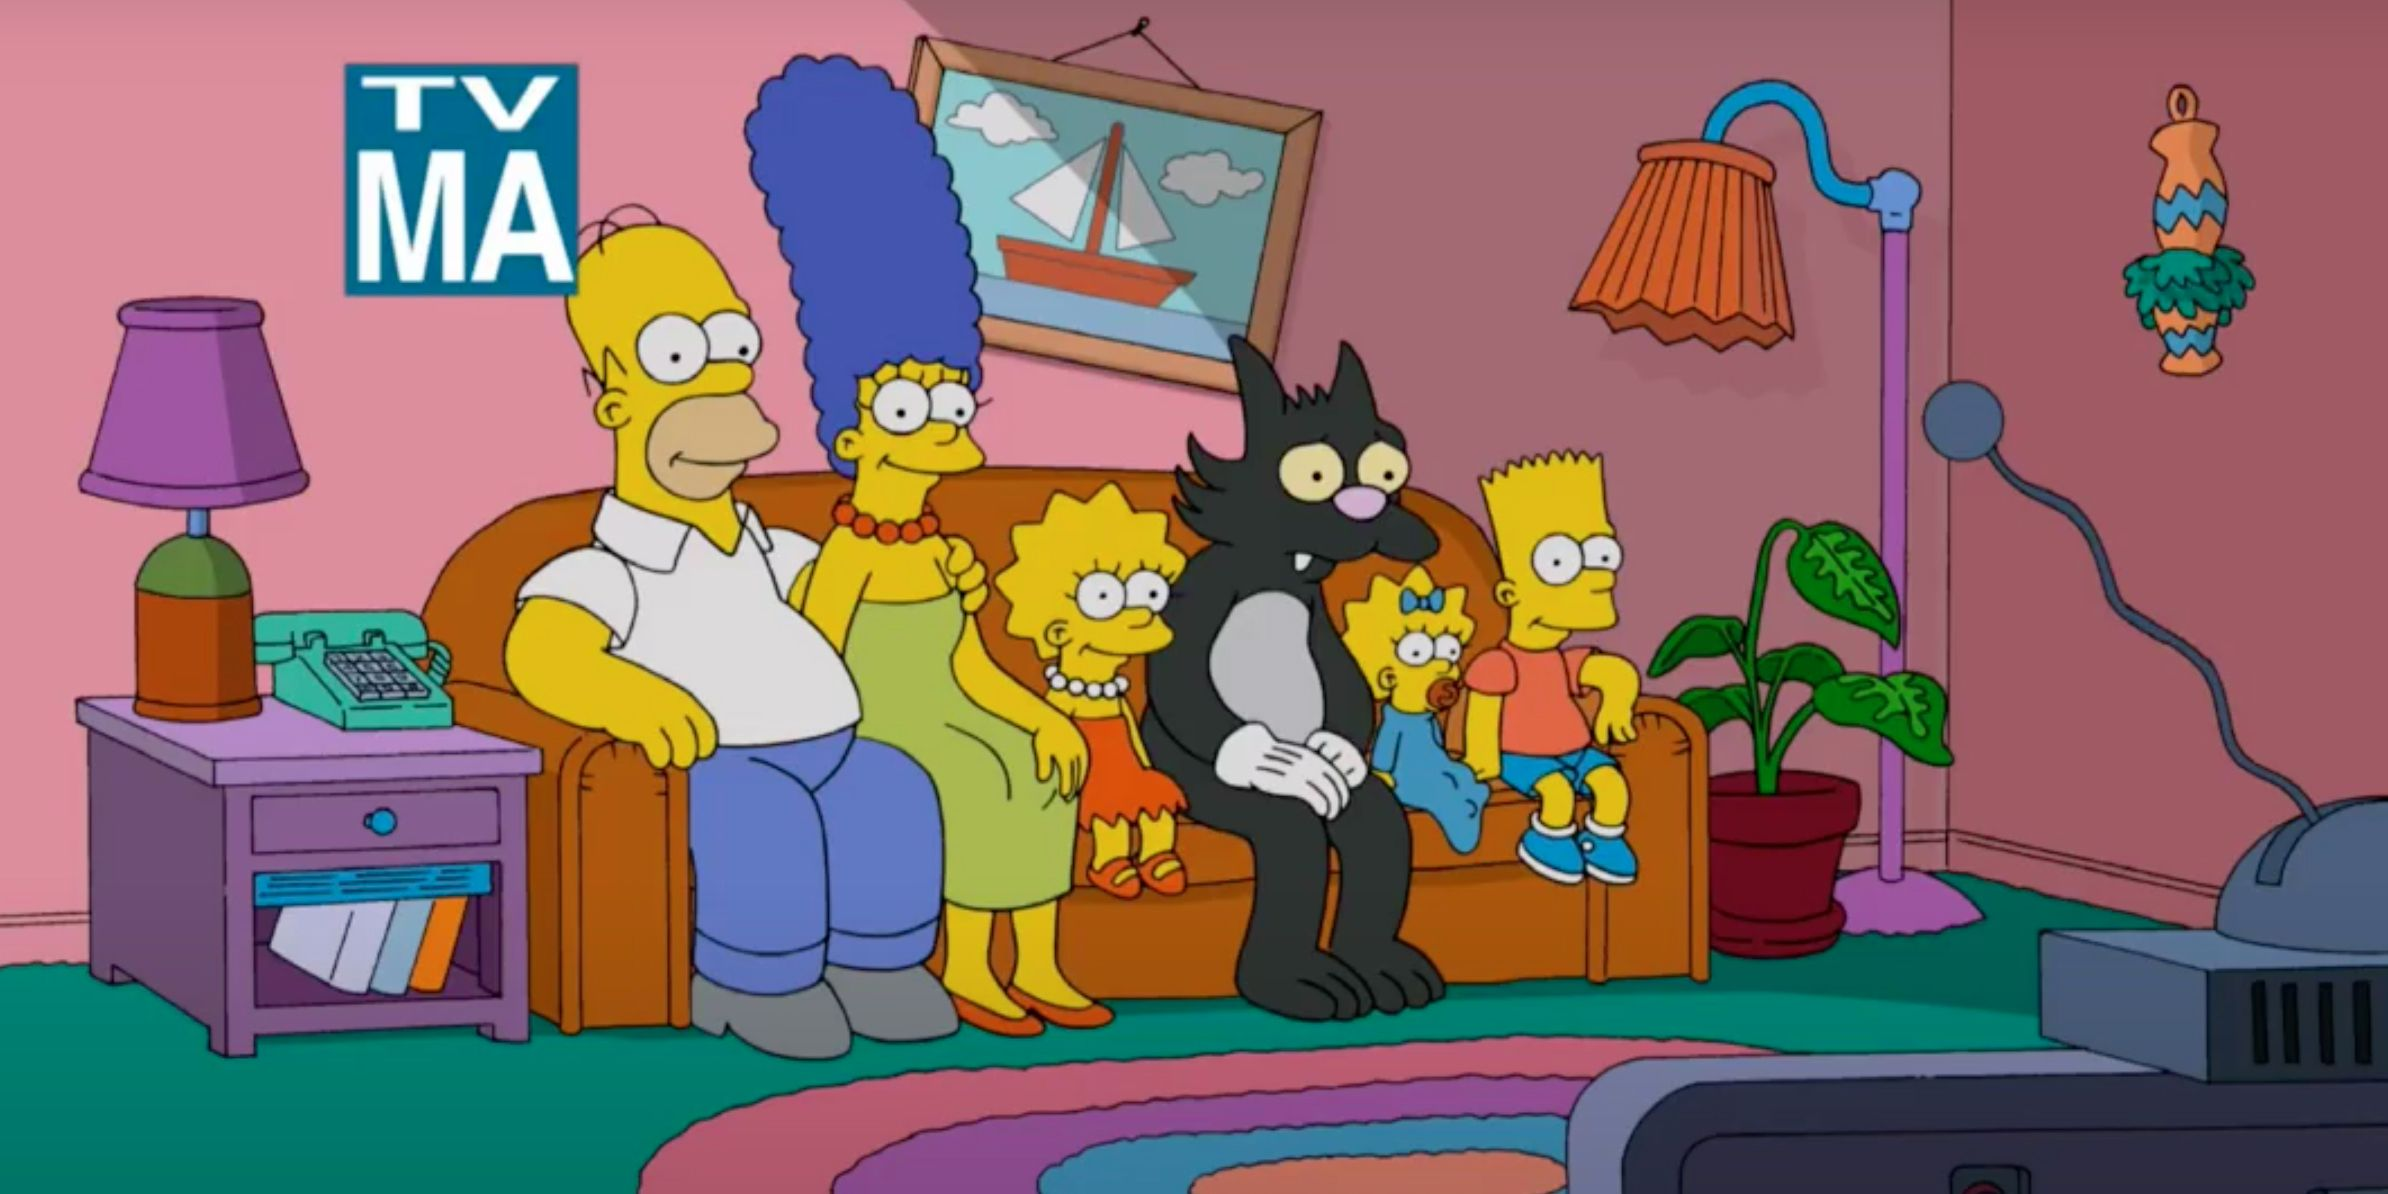 The Simpsons Only TV-MA Episode Is Censored on Disney+ | CBR